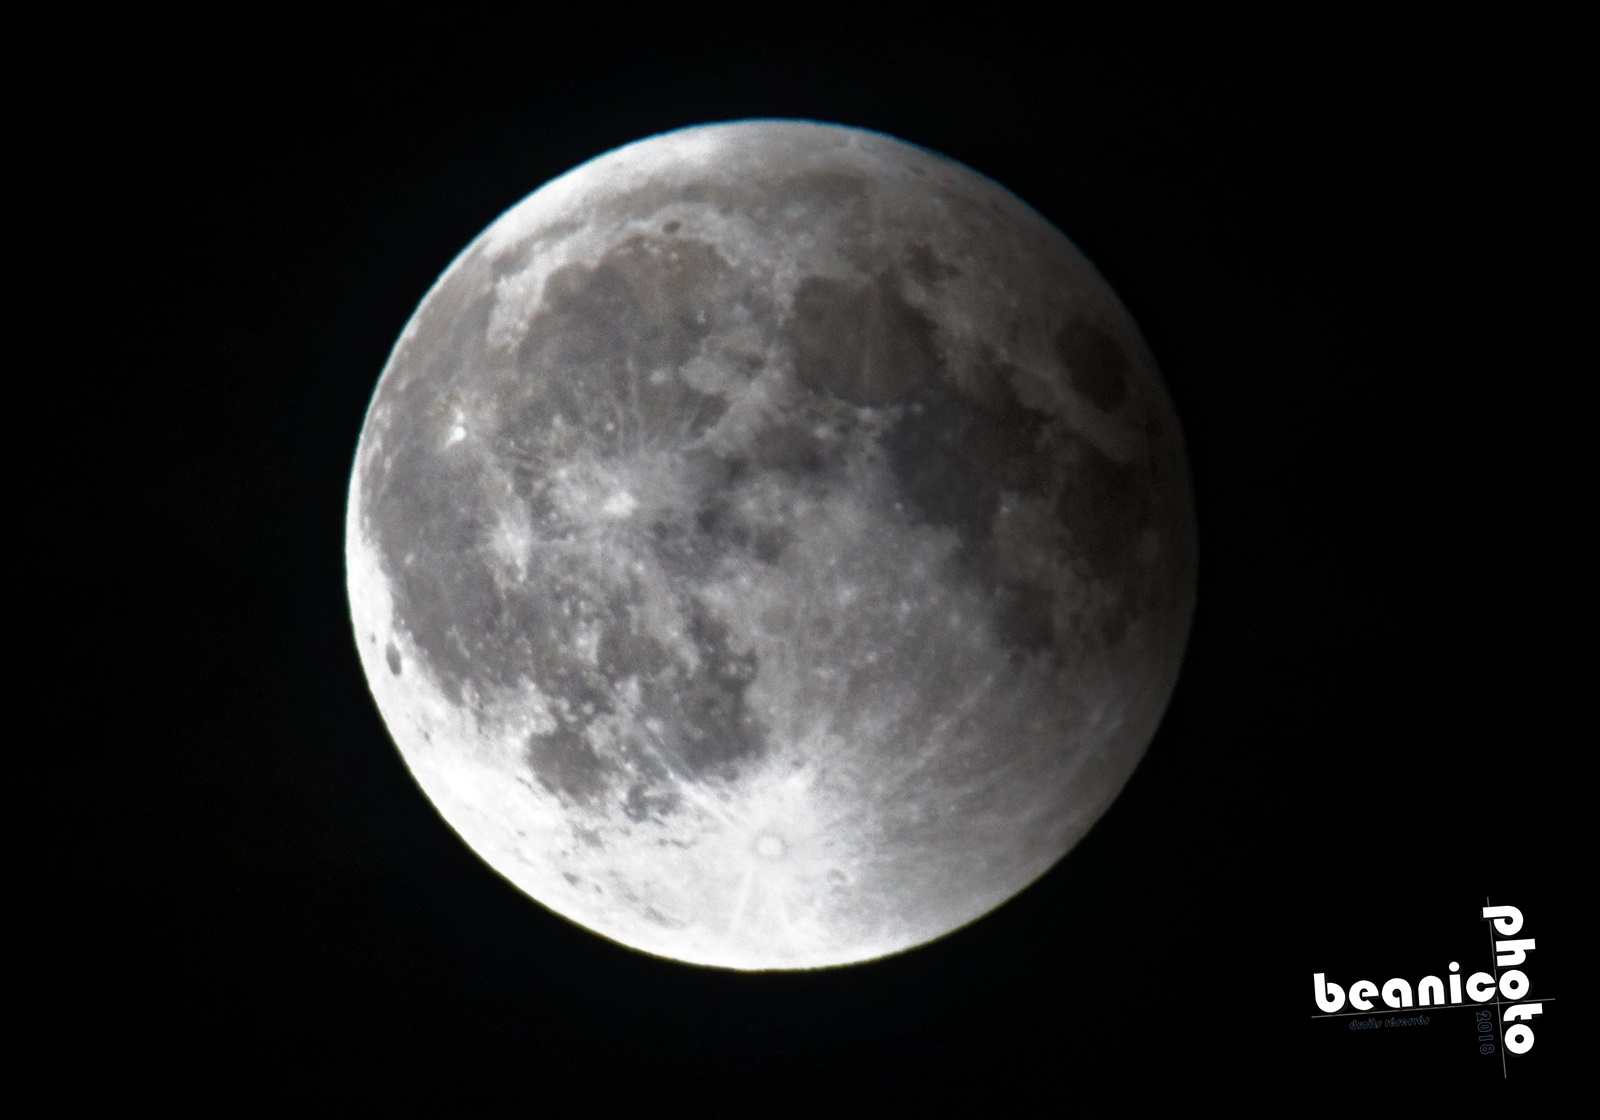 Eclipse de Lune - 27 juillet 2018 - 27/07/18 - www.beanico-photo.fr